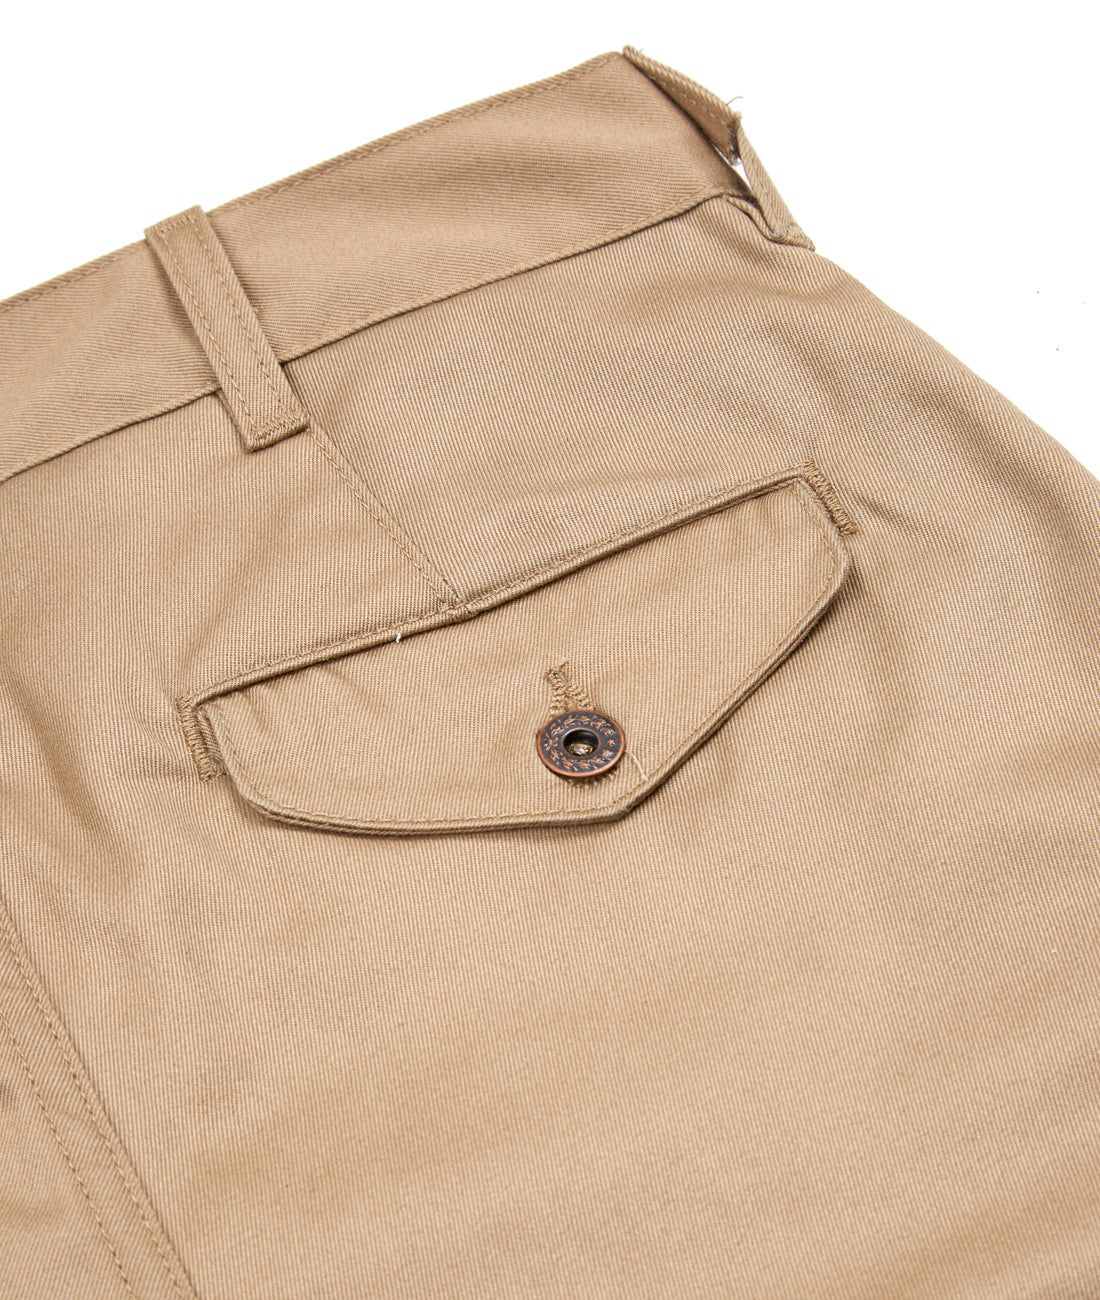 The Cramerton Selvage Chino Pre Order